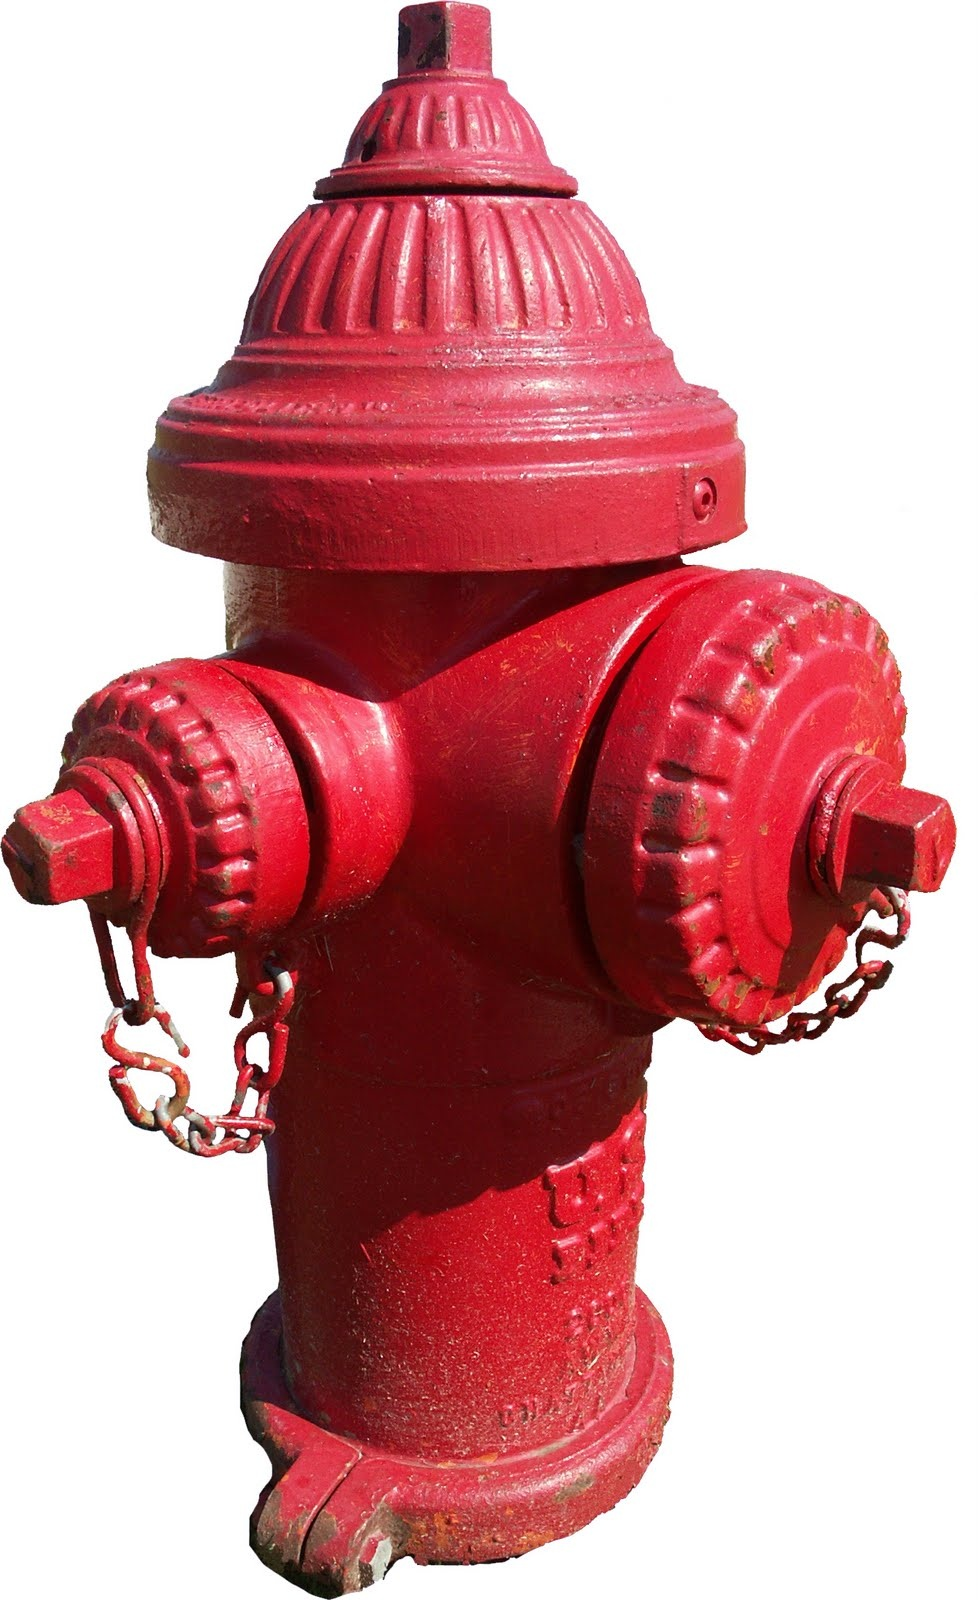 Keep the hydrant kit low